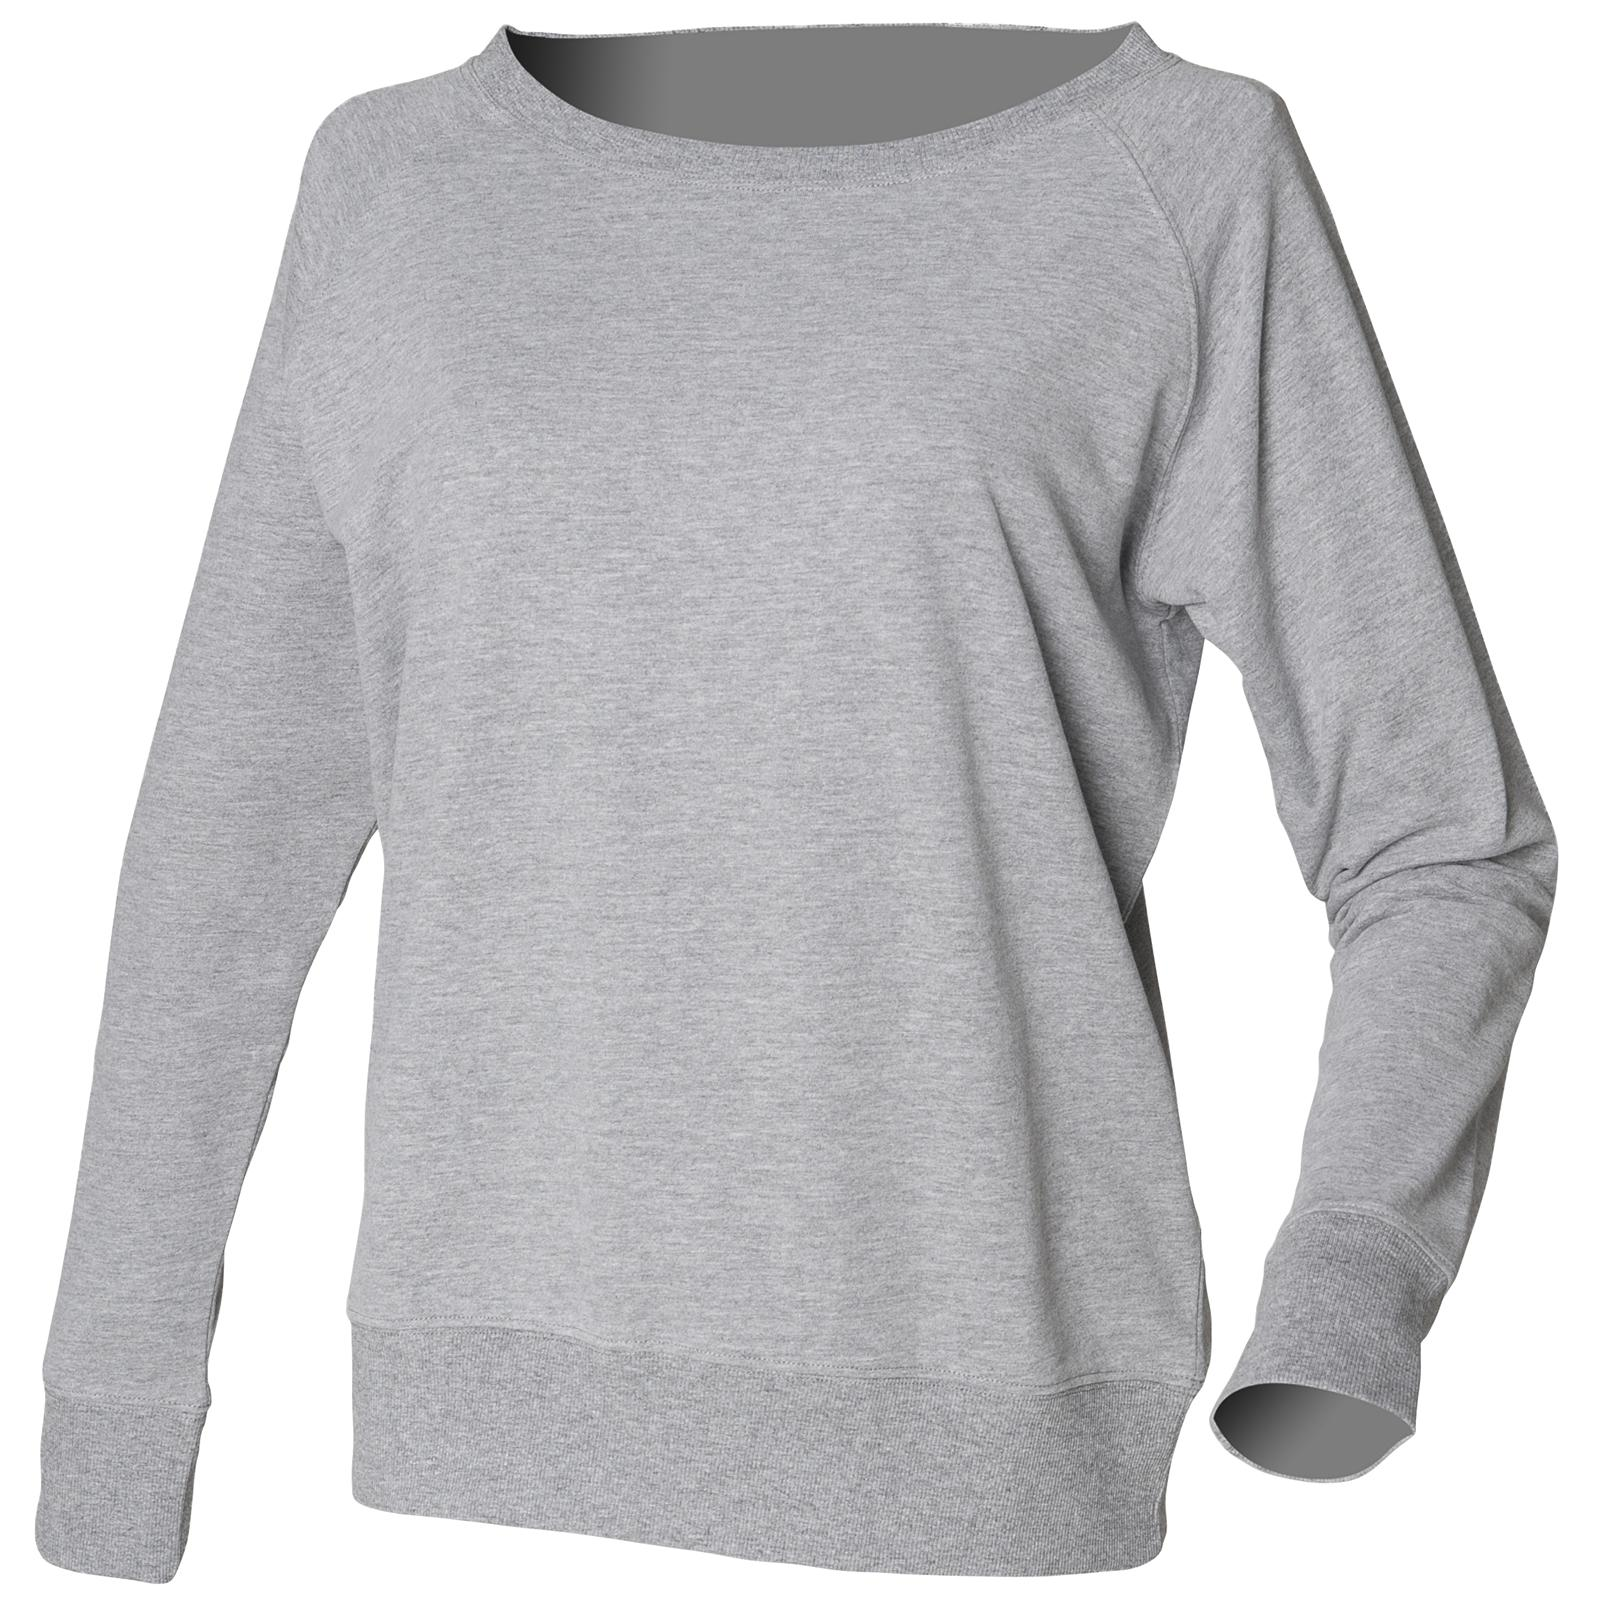 women sweatshirts and sweatpants A staple of classic cool, sweatshirts are a must-have in today's modern wardrobe. Whether worn on the way to the gym, on the weekend, or just for the trendy athleisure look, they're a comfortable and versatile addition to your closet.